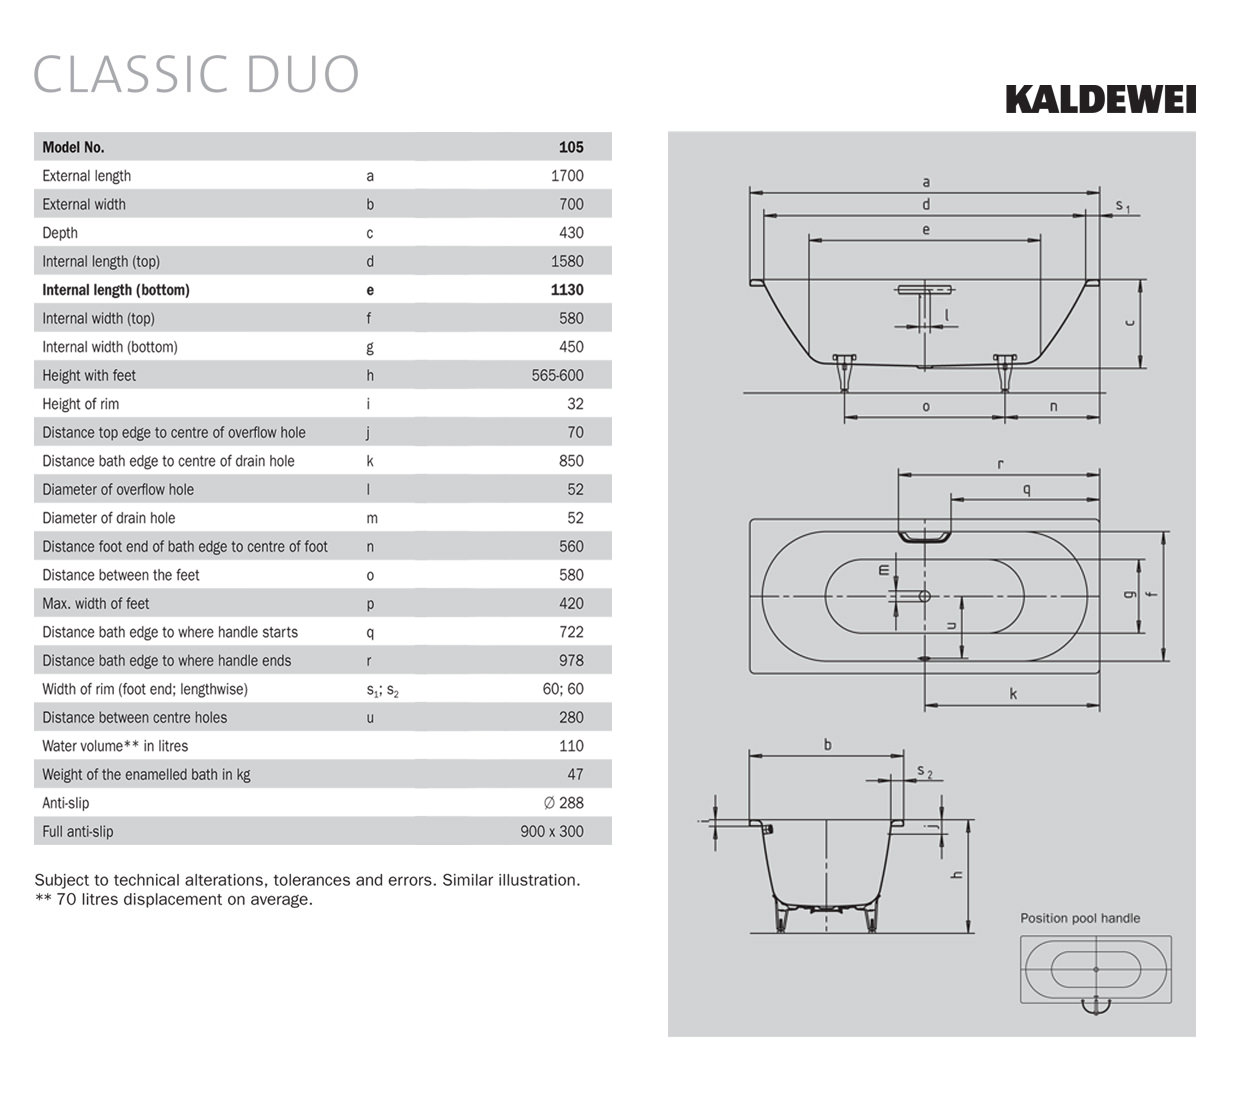 Kaldewei Classic Duo 20 Double Ended Steel Bath 20 x 20mm.